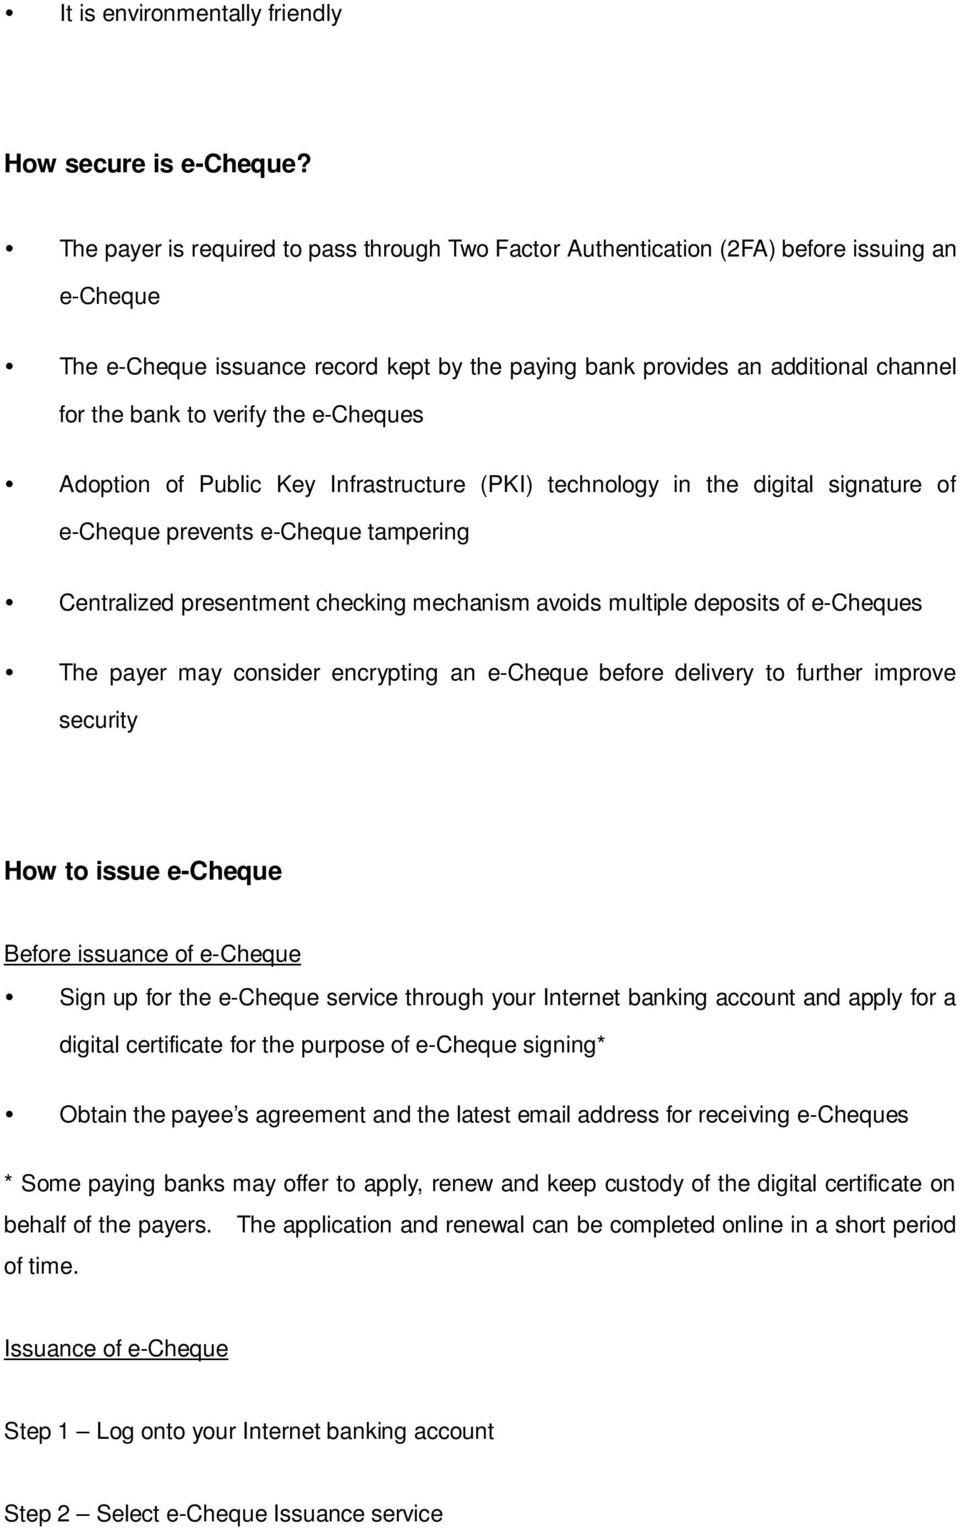 verify the e-cheques Adoption of Public Key Infrastructure (PKI) technology in the digital signature of e-cheque prevents e-cheque tampering Centralized presentment checking mechanism avoids multiple